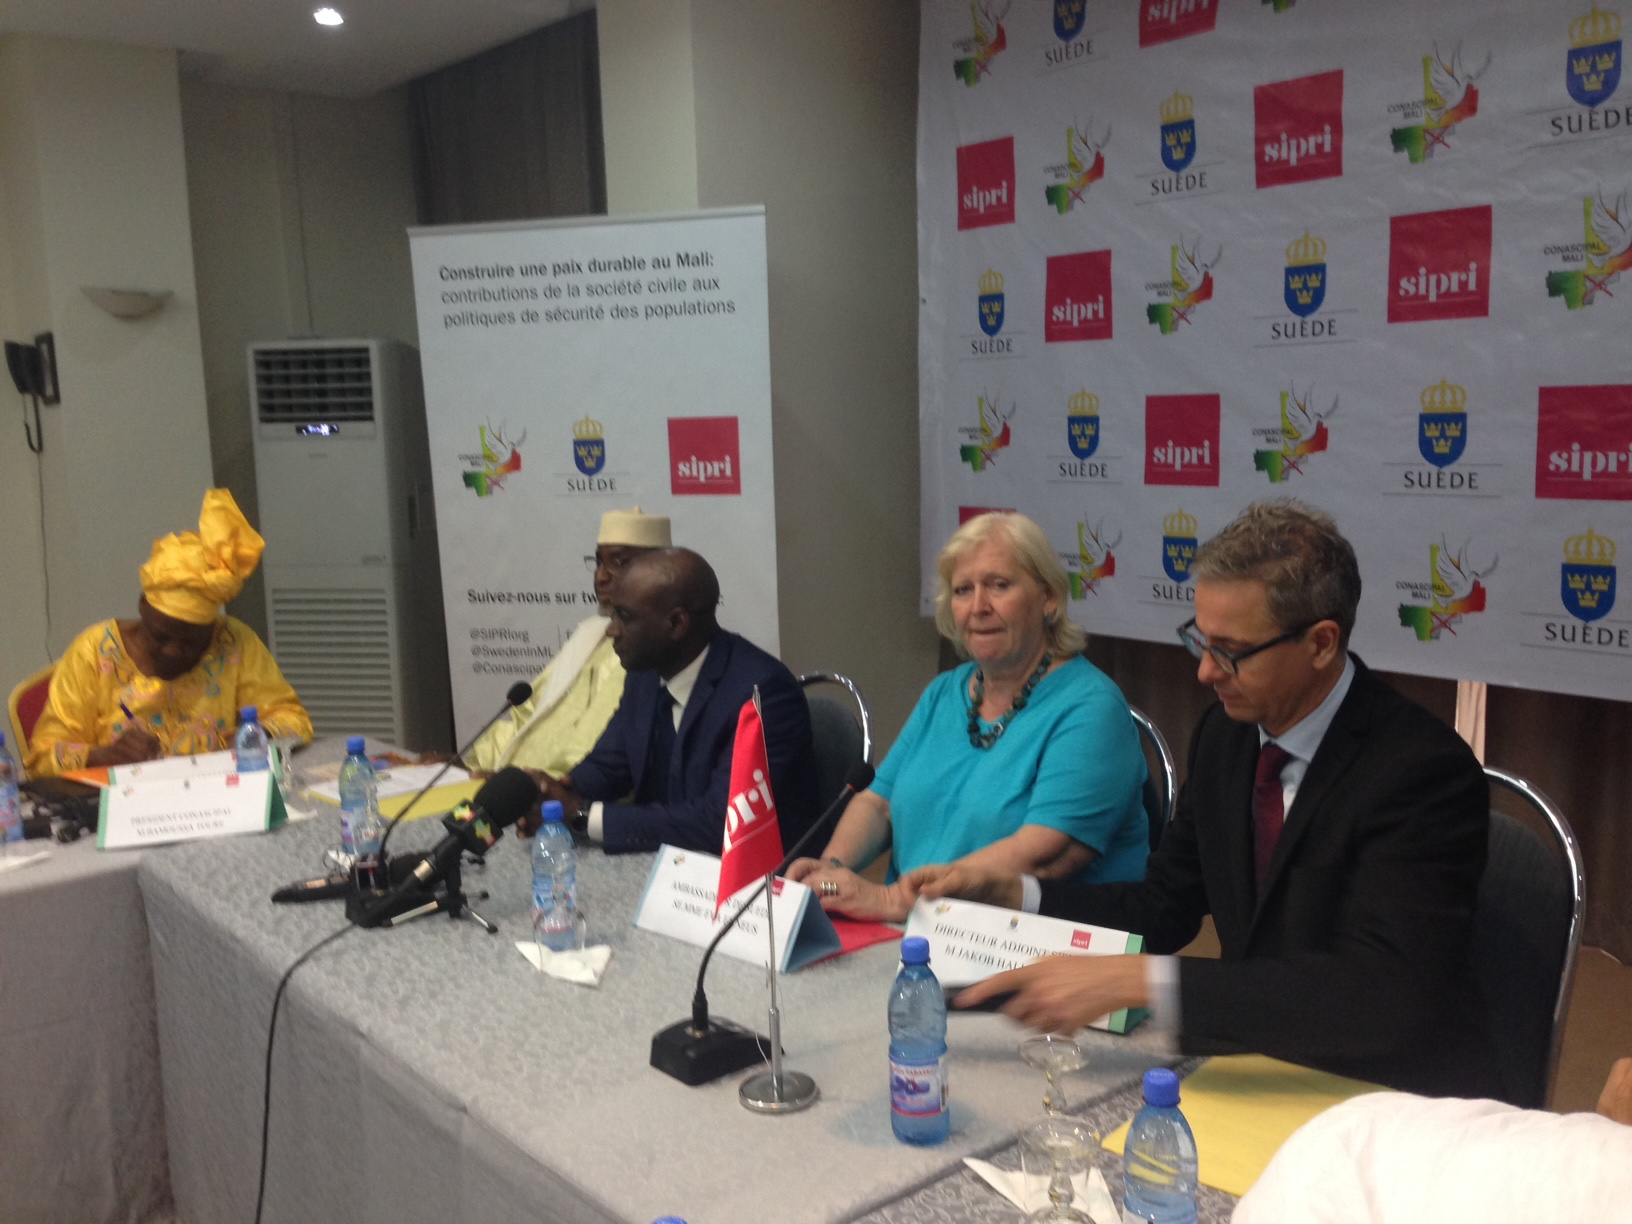 The Ambassador of Sweden to Mali, the Malian Minister of Security and SIPRI Deputy Director Jakob Hallgren at the launch of the Project in Bamako.